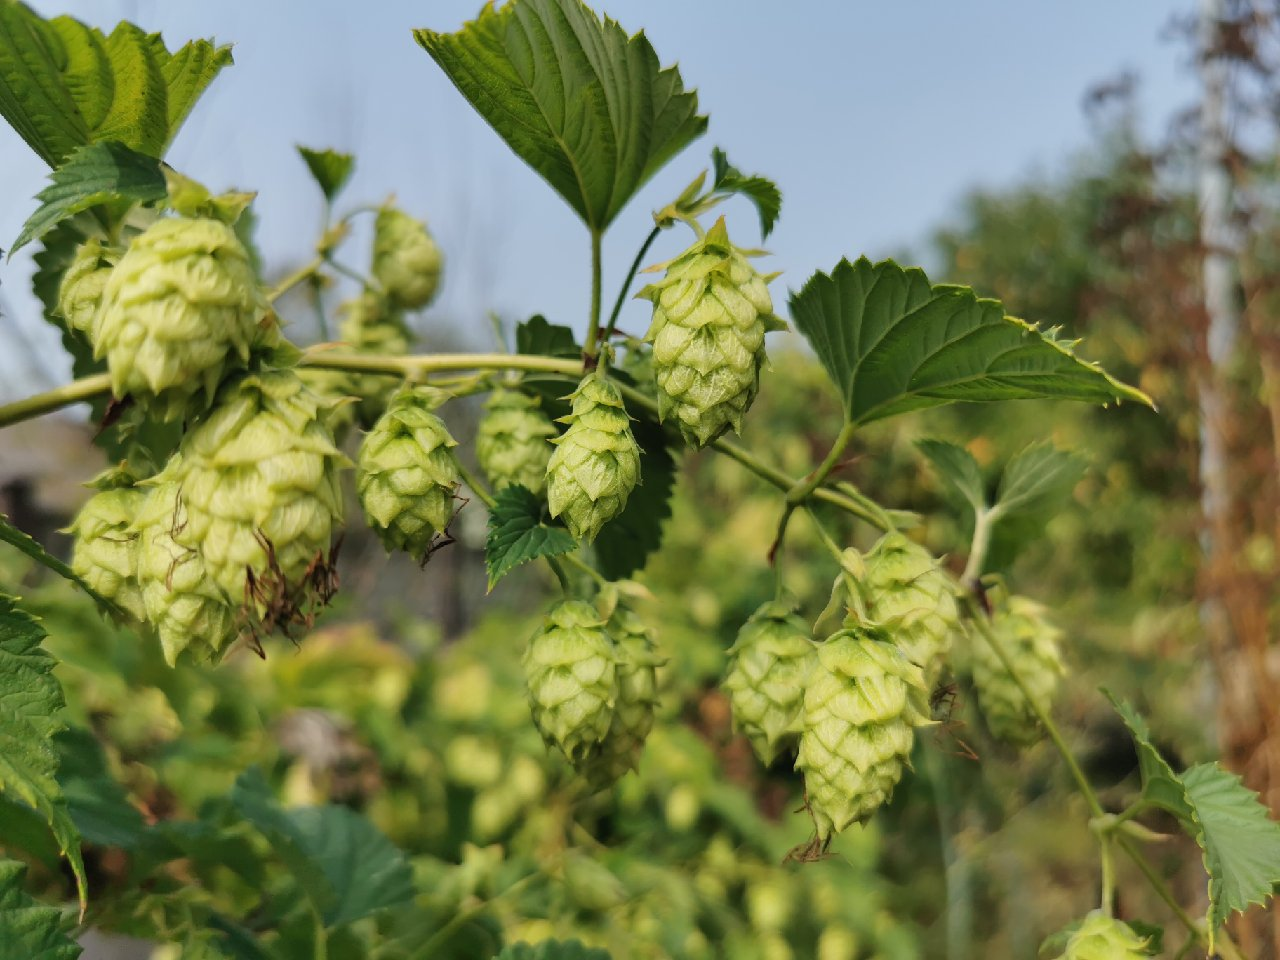 Beautiful hops, ripe and ready for the picking.